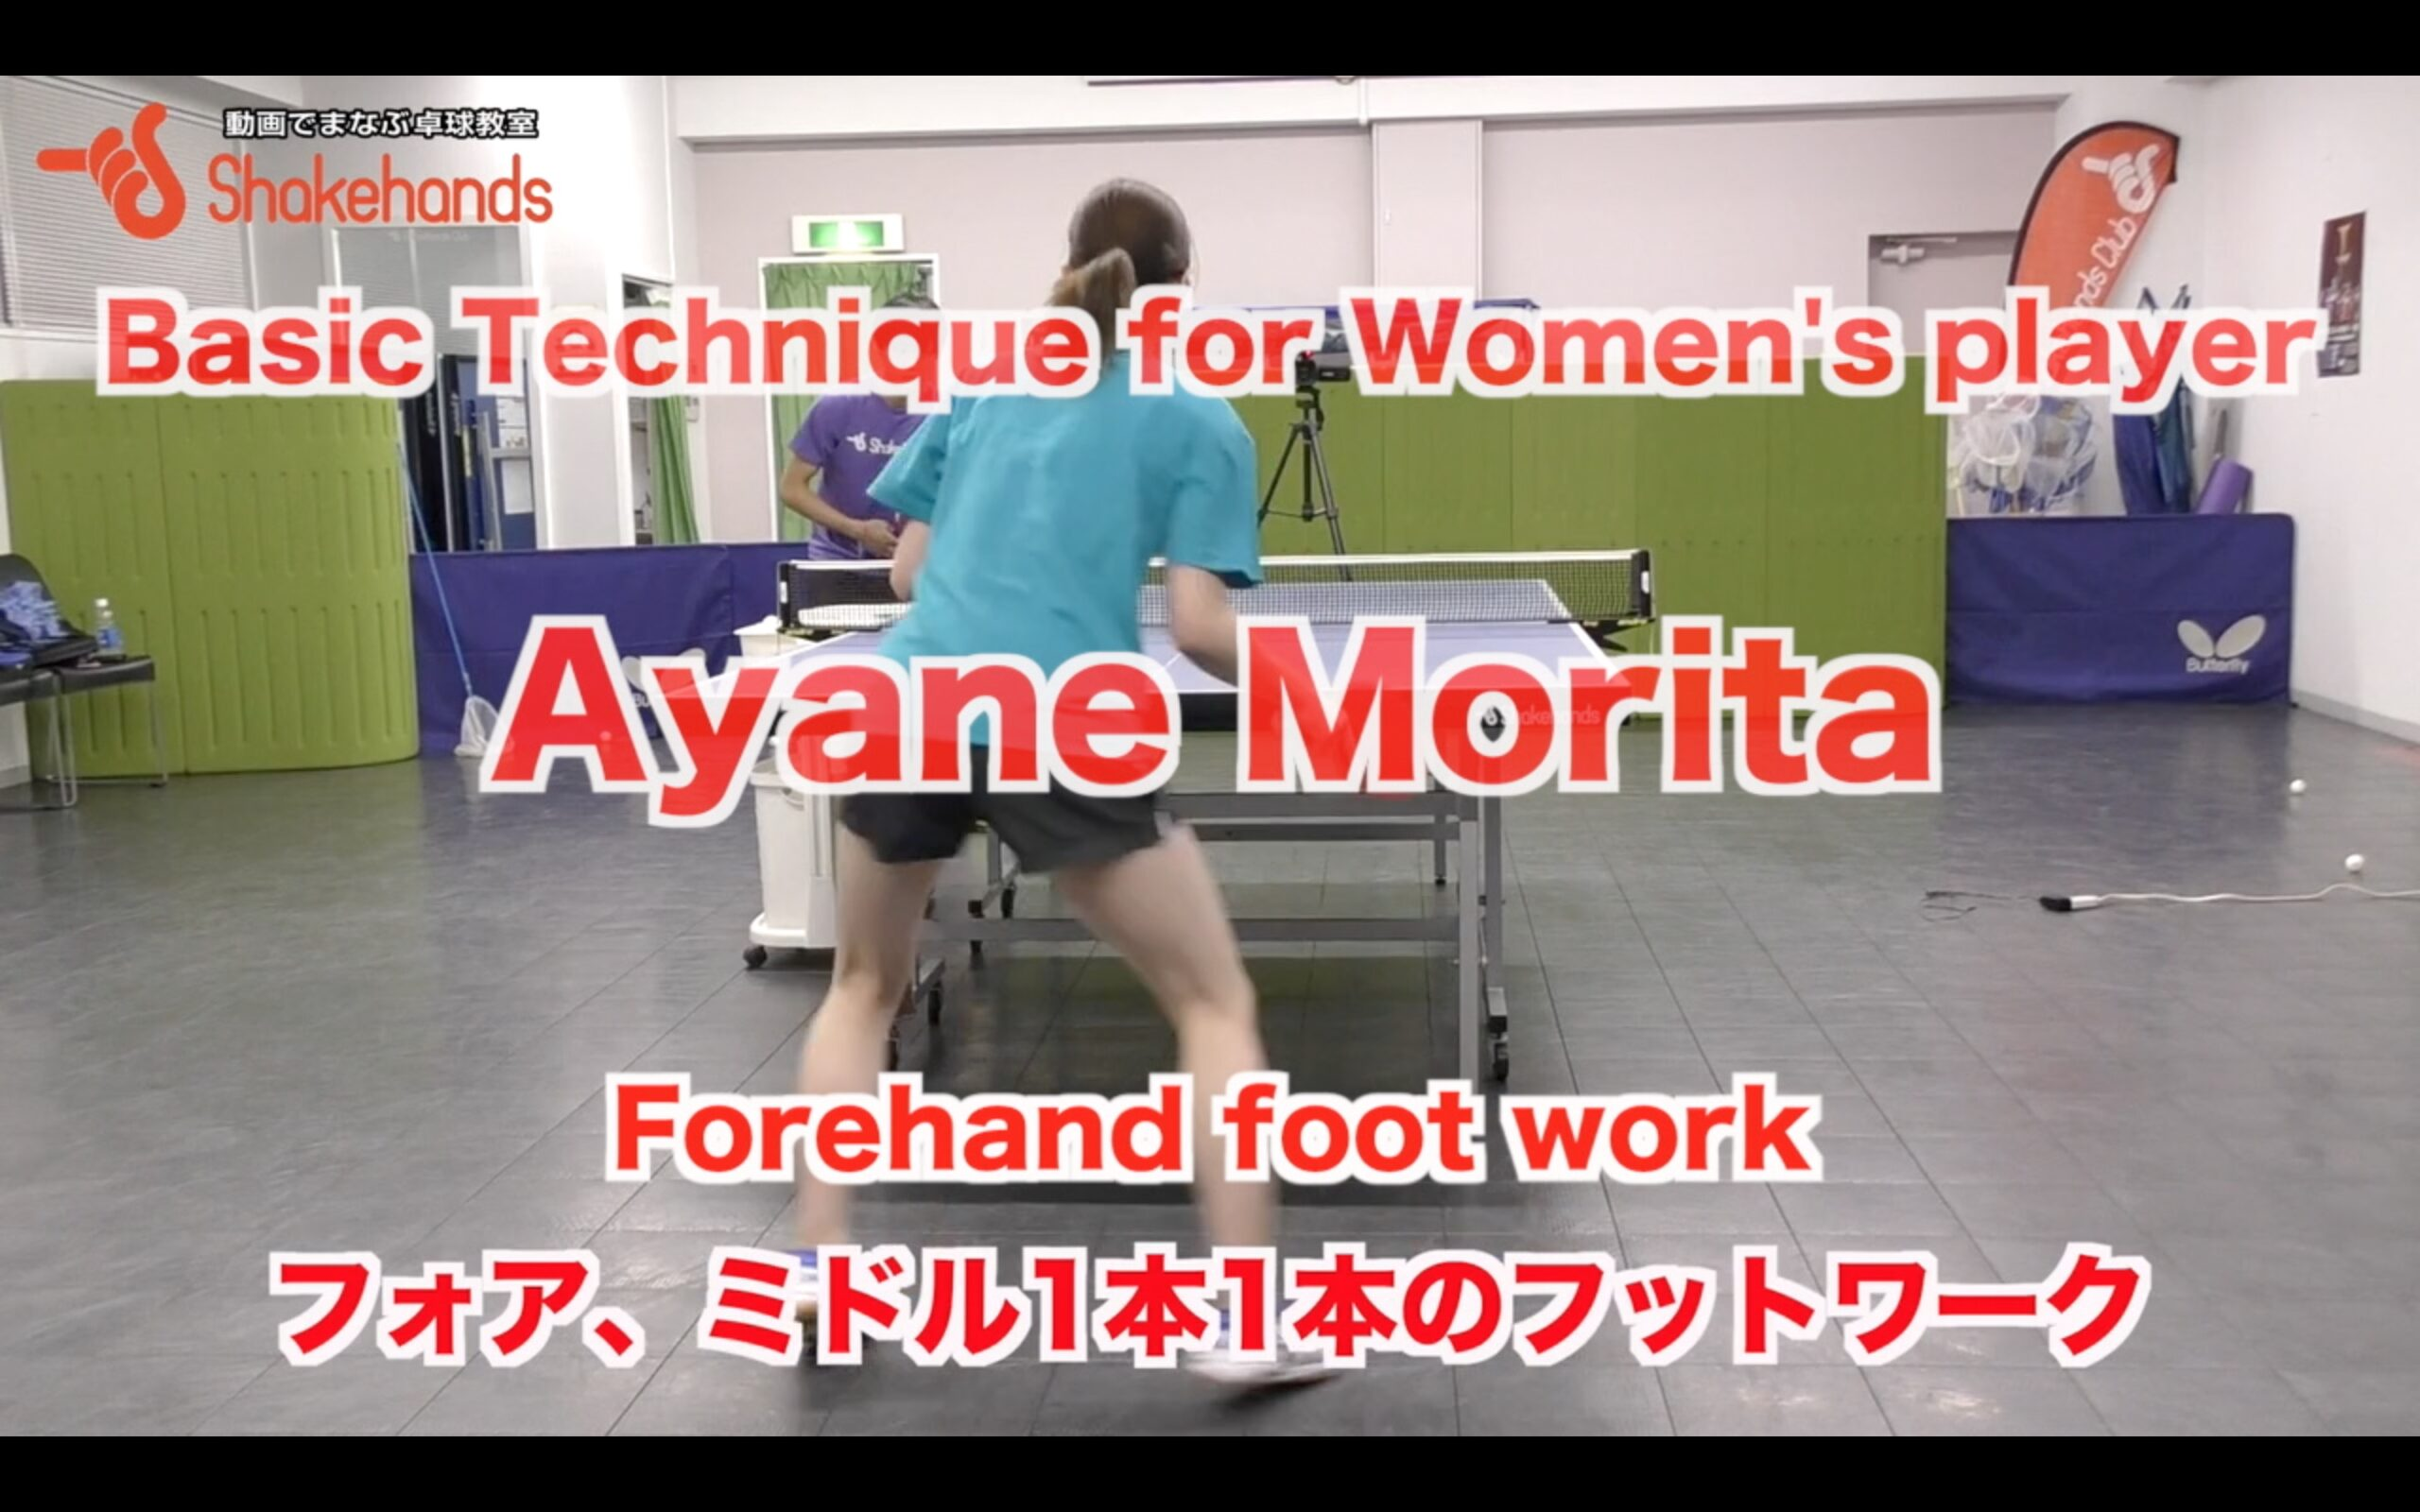 Forehand foot work